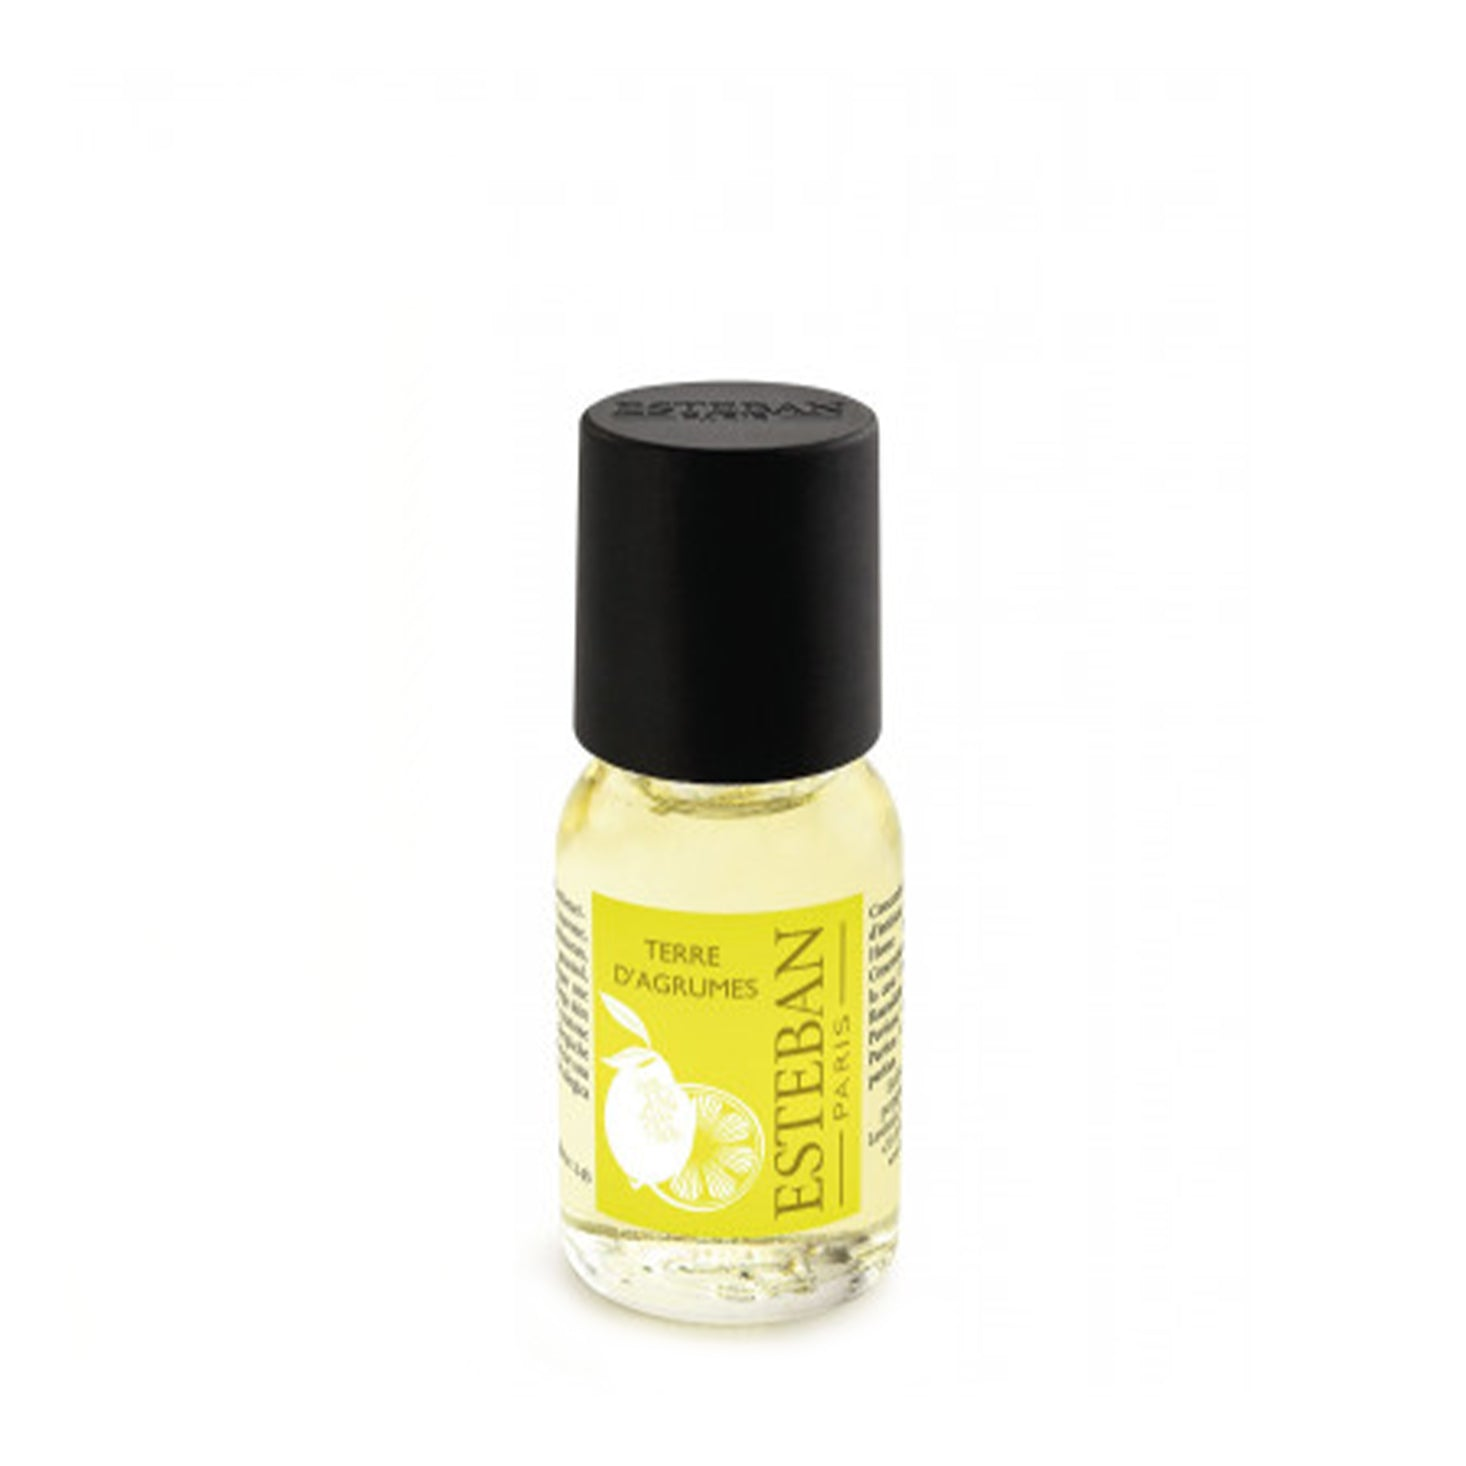 Esteban Terre d'Agrumes Refresher Oil